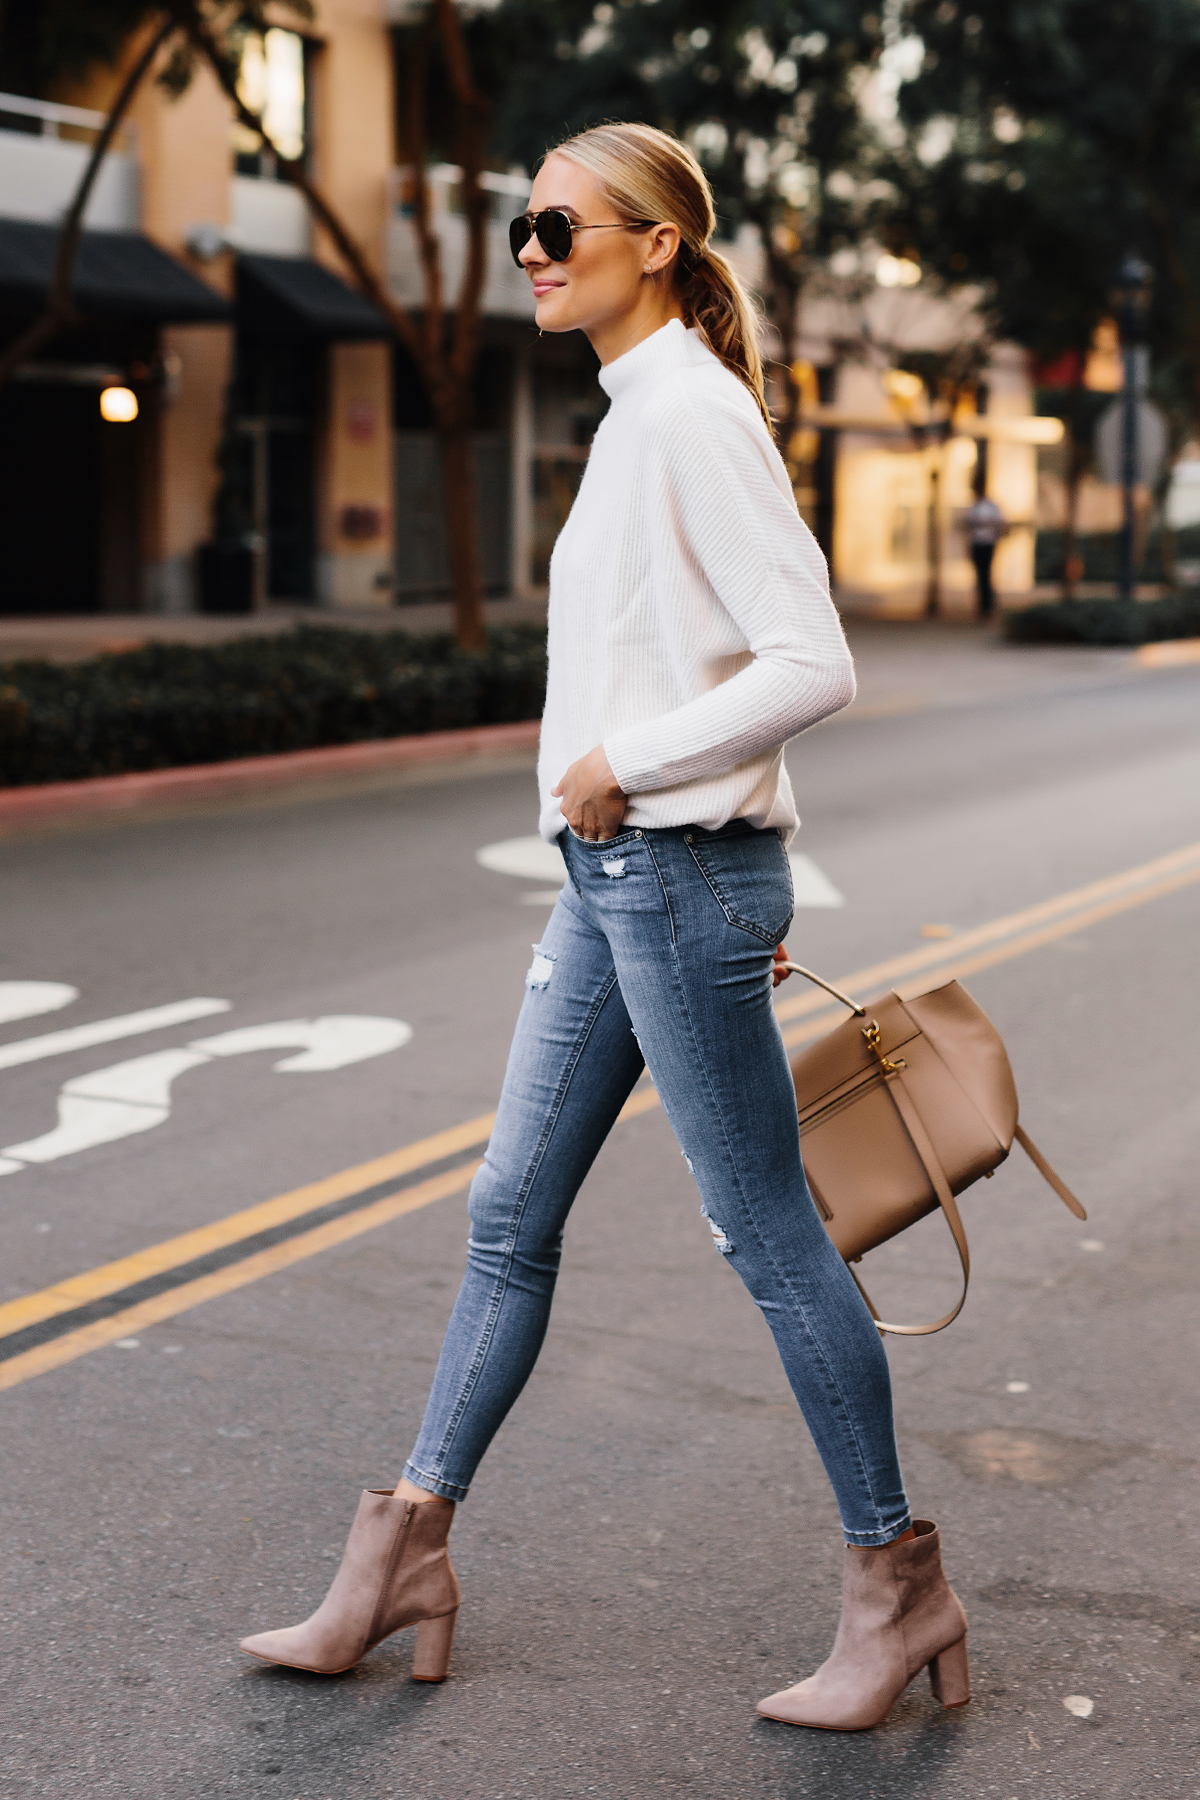 Blonde Woman Wearing White Sweater Denim Ripped Skinny Jeans Steve Madden Taupe Booties Outfit Fashion Jackson San Diego Fashion Blogger Street Style